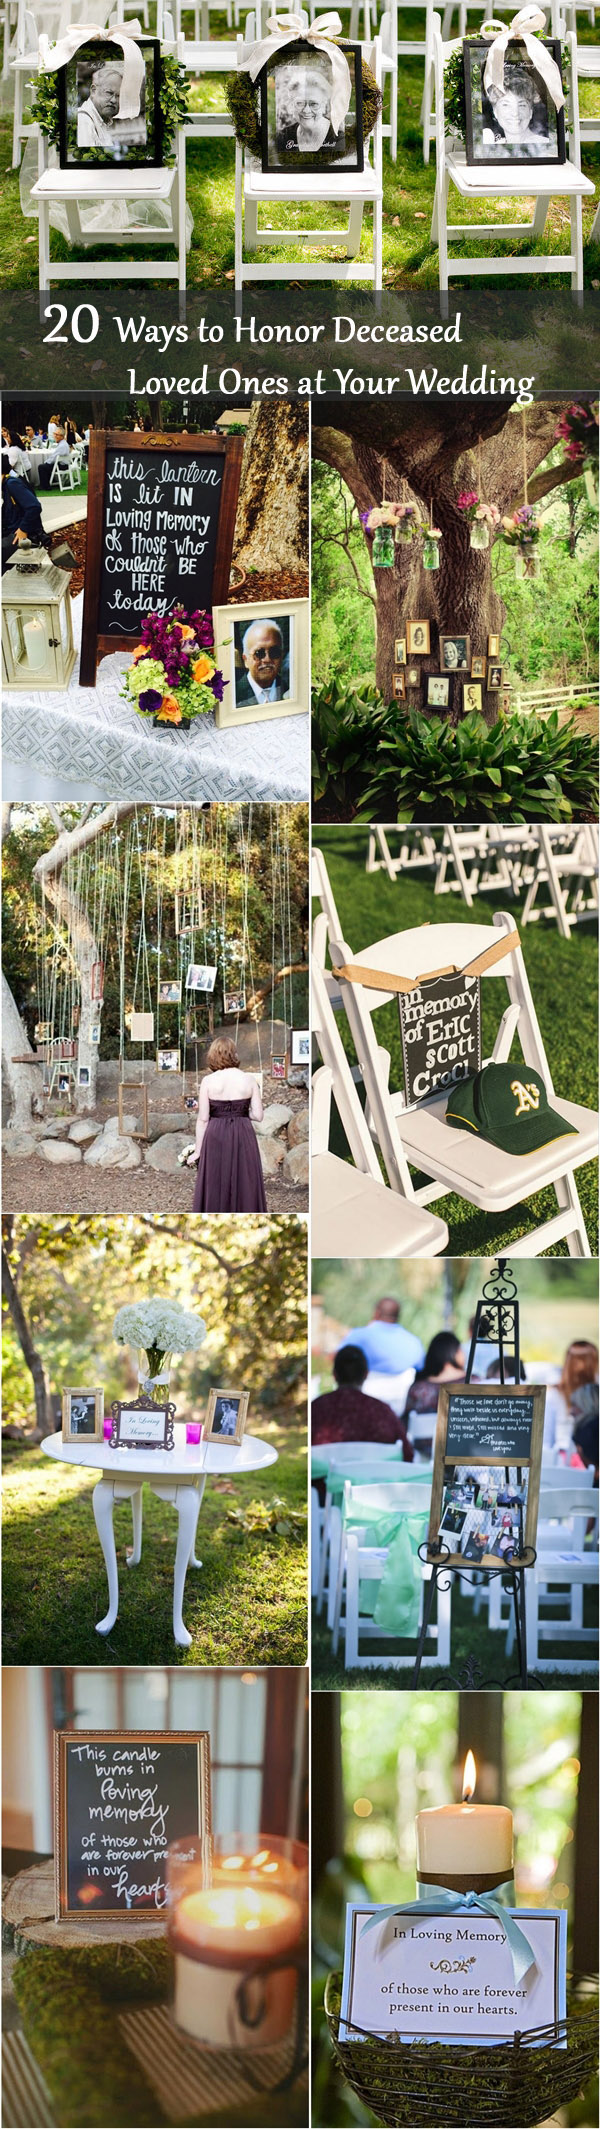 unique wedding ideas to honor lost loved ones